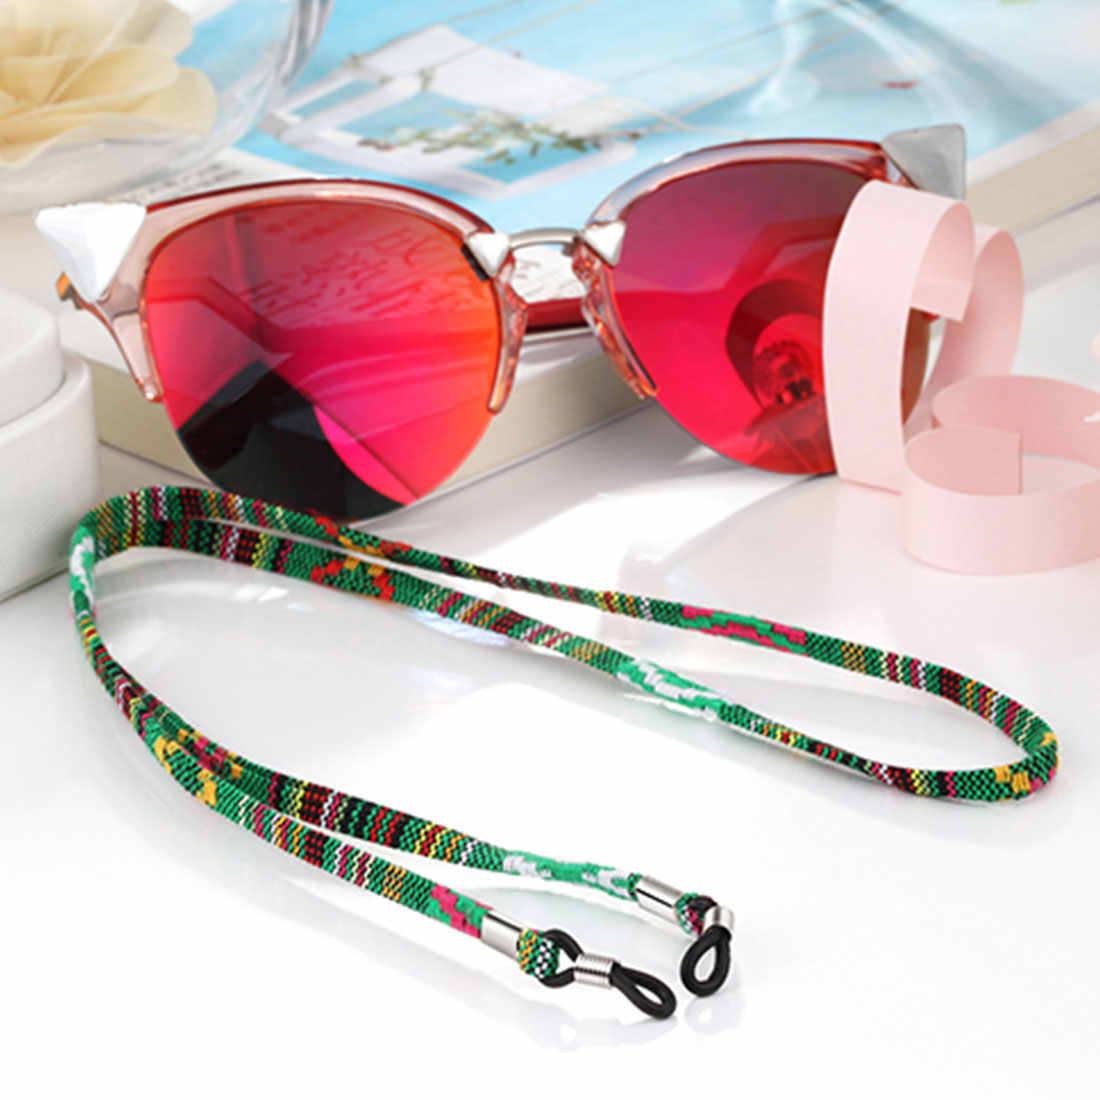 Woven Eyeglasses Chain Reading Glasses Rope  Ethnic Style Sunglasses Strap Cord Holder Neck Band Accessories